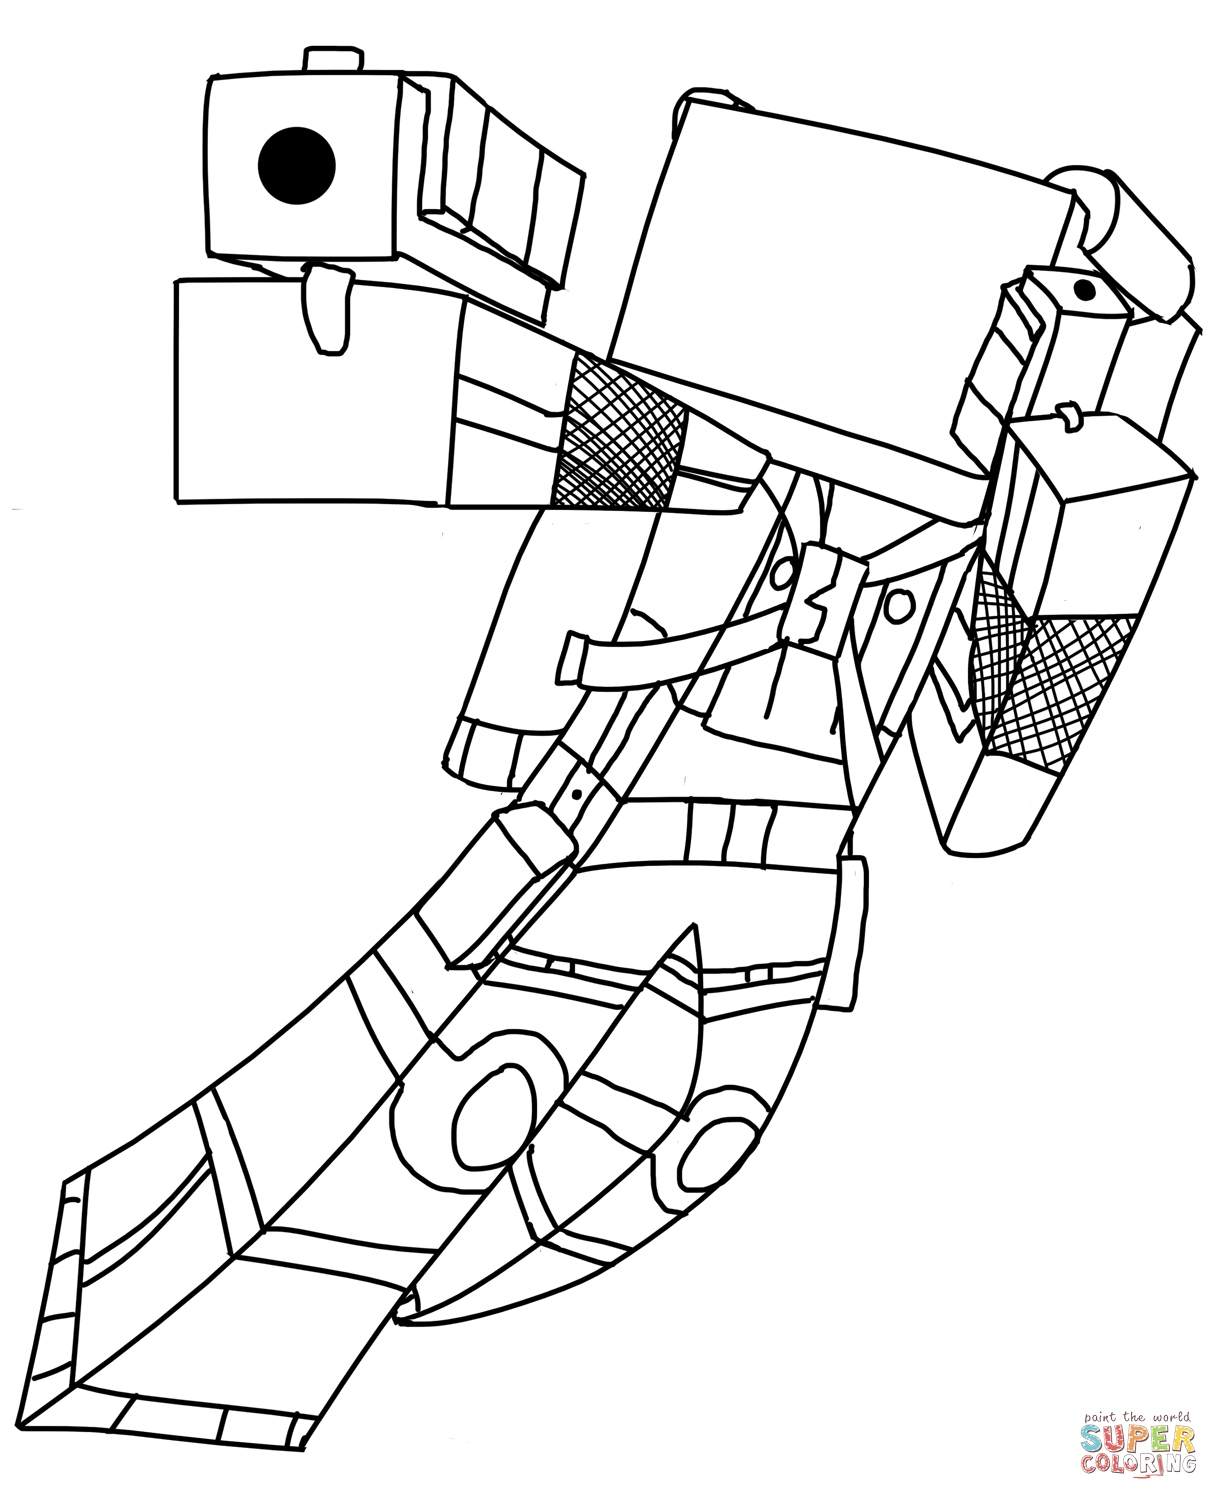 minecraft skin coloring pages minecraft steve coloring pages minecraft steve and alex minecraft skin pages coloring